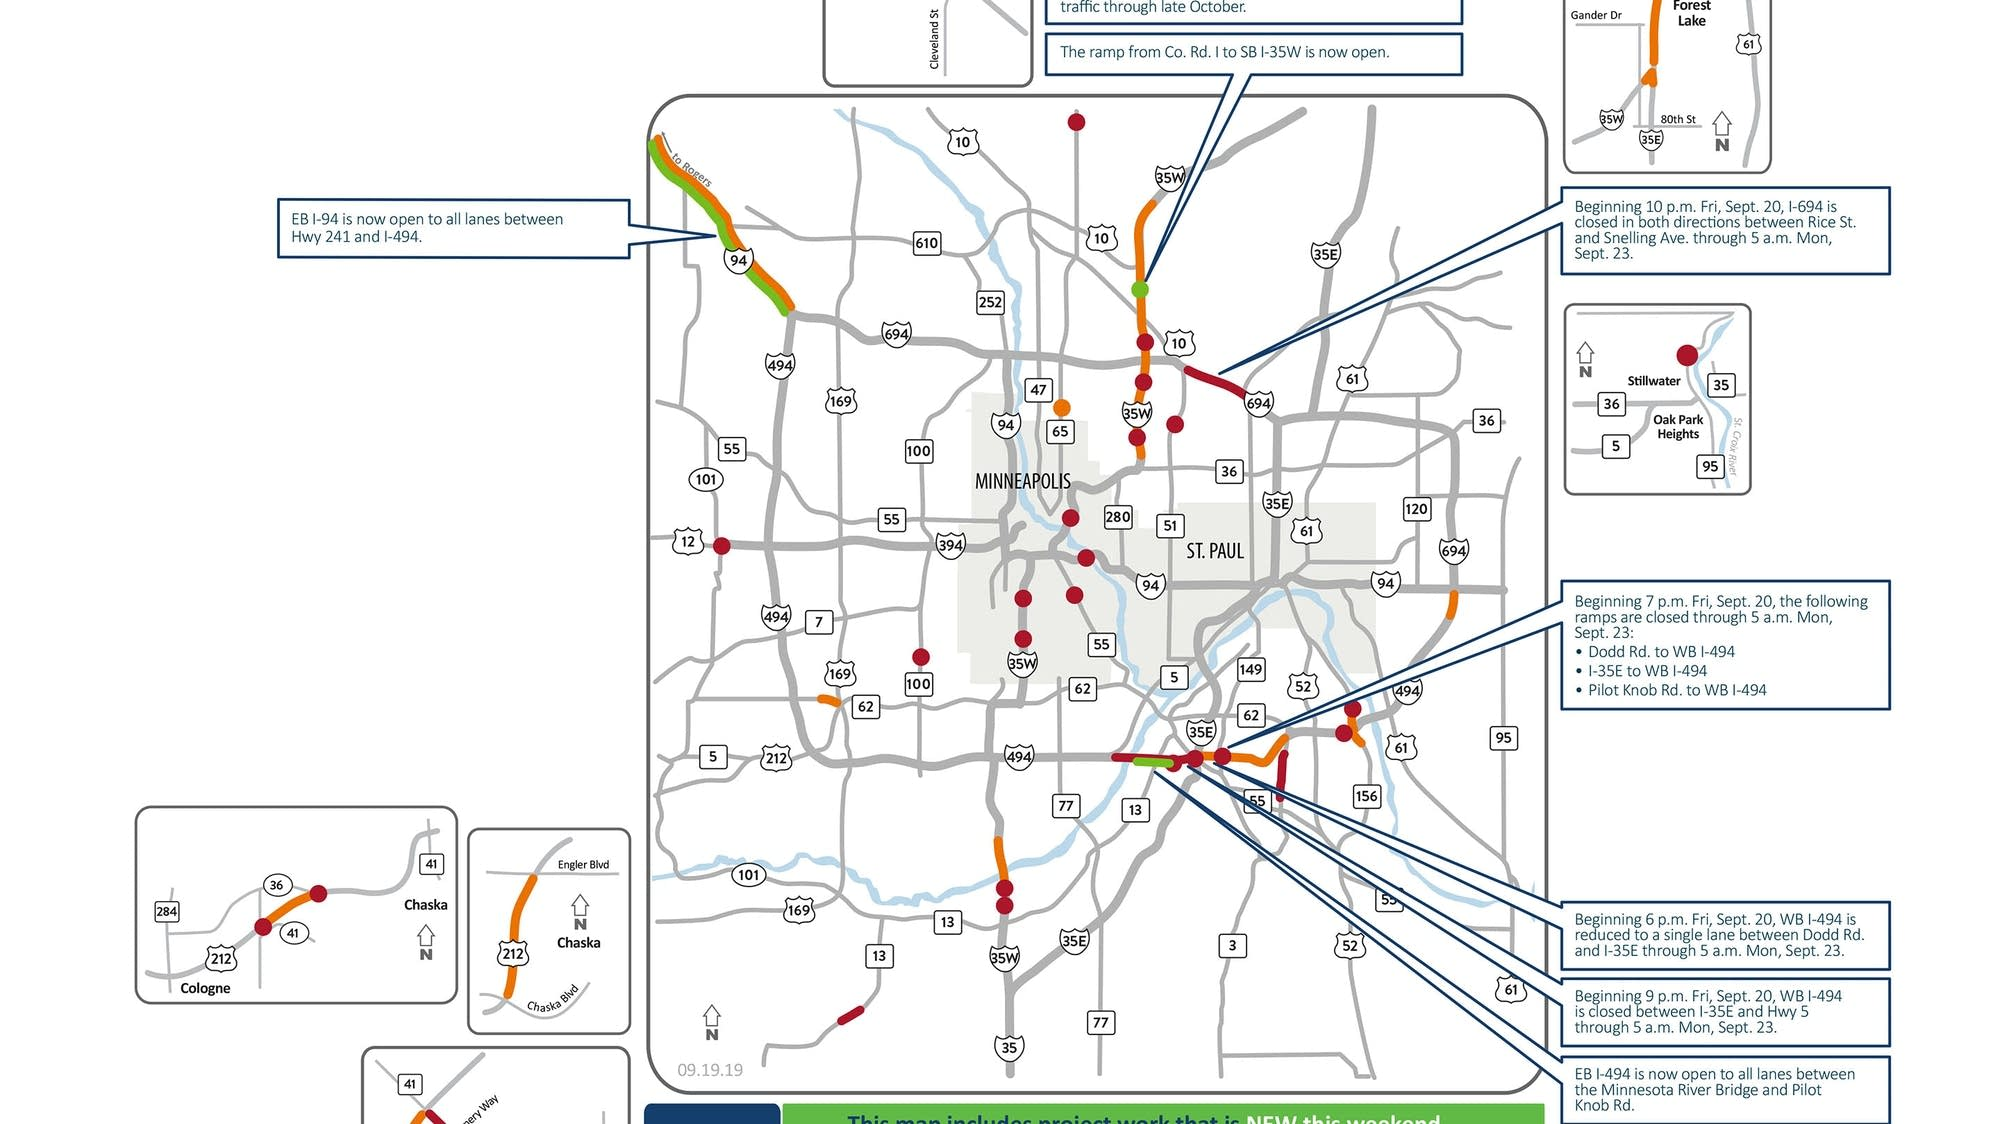 I-694, I-494 west closures top Twin Cities weekend road woes ... on lincoln way map, interstate 27 map, interstate 26 map, interstate 30 map, interstate map of mississippi and alabama, interstate 85 map, interstate 10 map, interstate 80 map, interstate 422 map, interstate 44 map, interstate 25 map, interstate 526 map, interstate 75 map, new jersey route 1 map, interstate 70 map, interstate highway map, interstate 74 map, us highway 78 map,